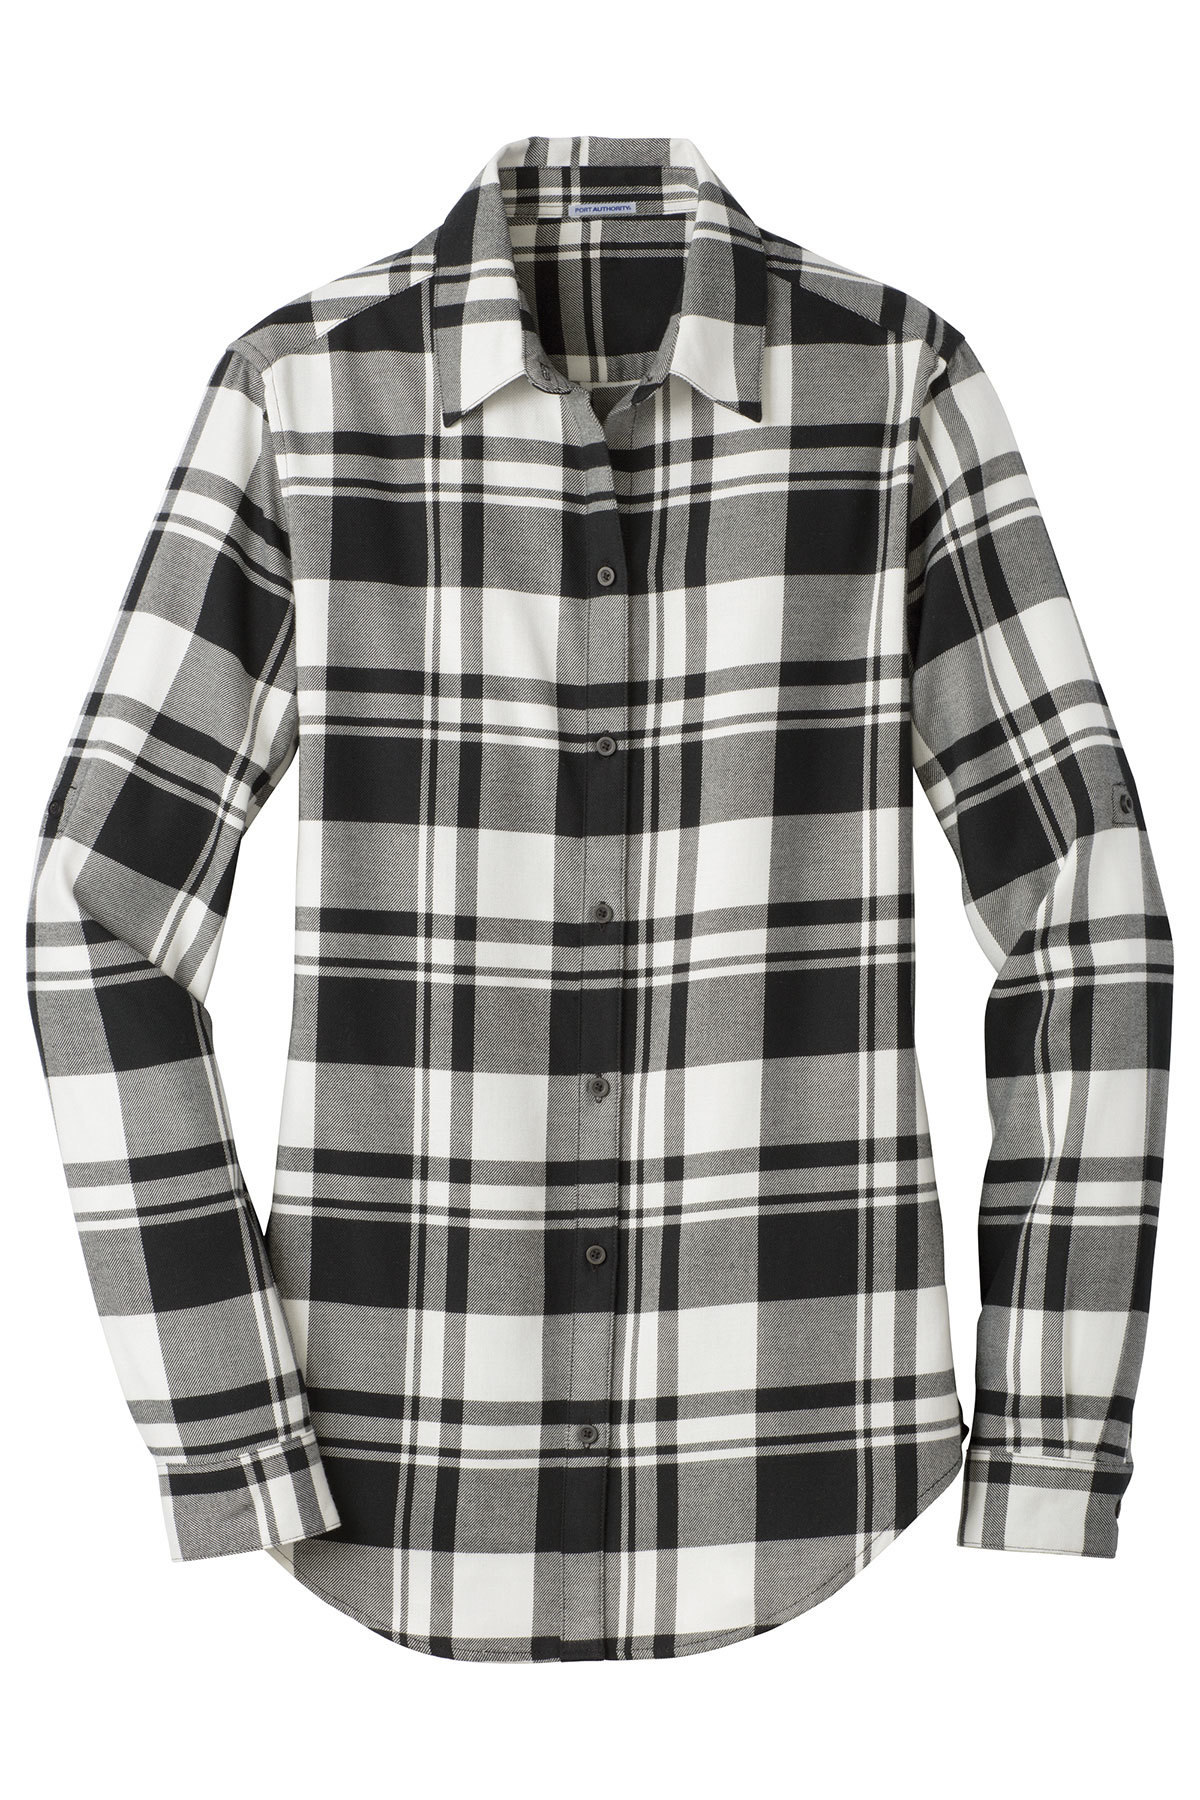 Flannel shirt outline black and white clipart banner transparent download Port Authority® Ladies Plaid Flannel Tunic | Ladies/Women | Woven ... banner transparent download